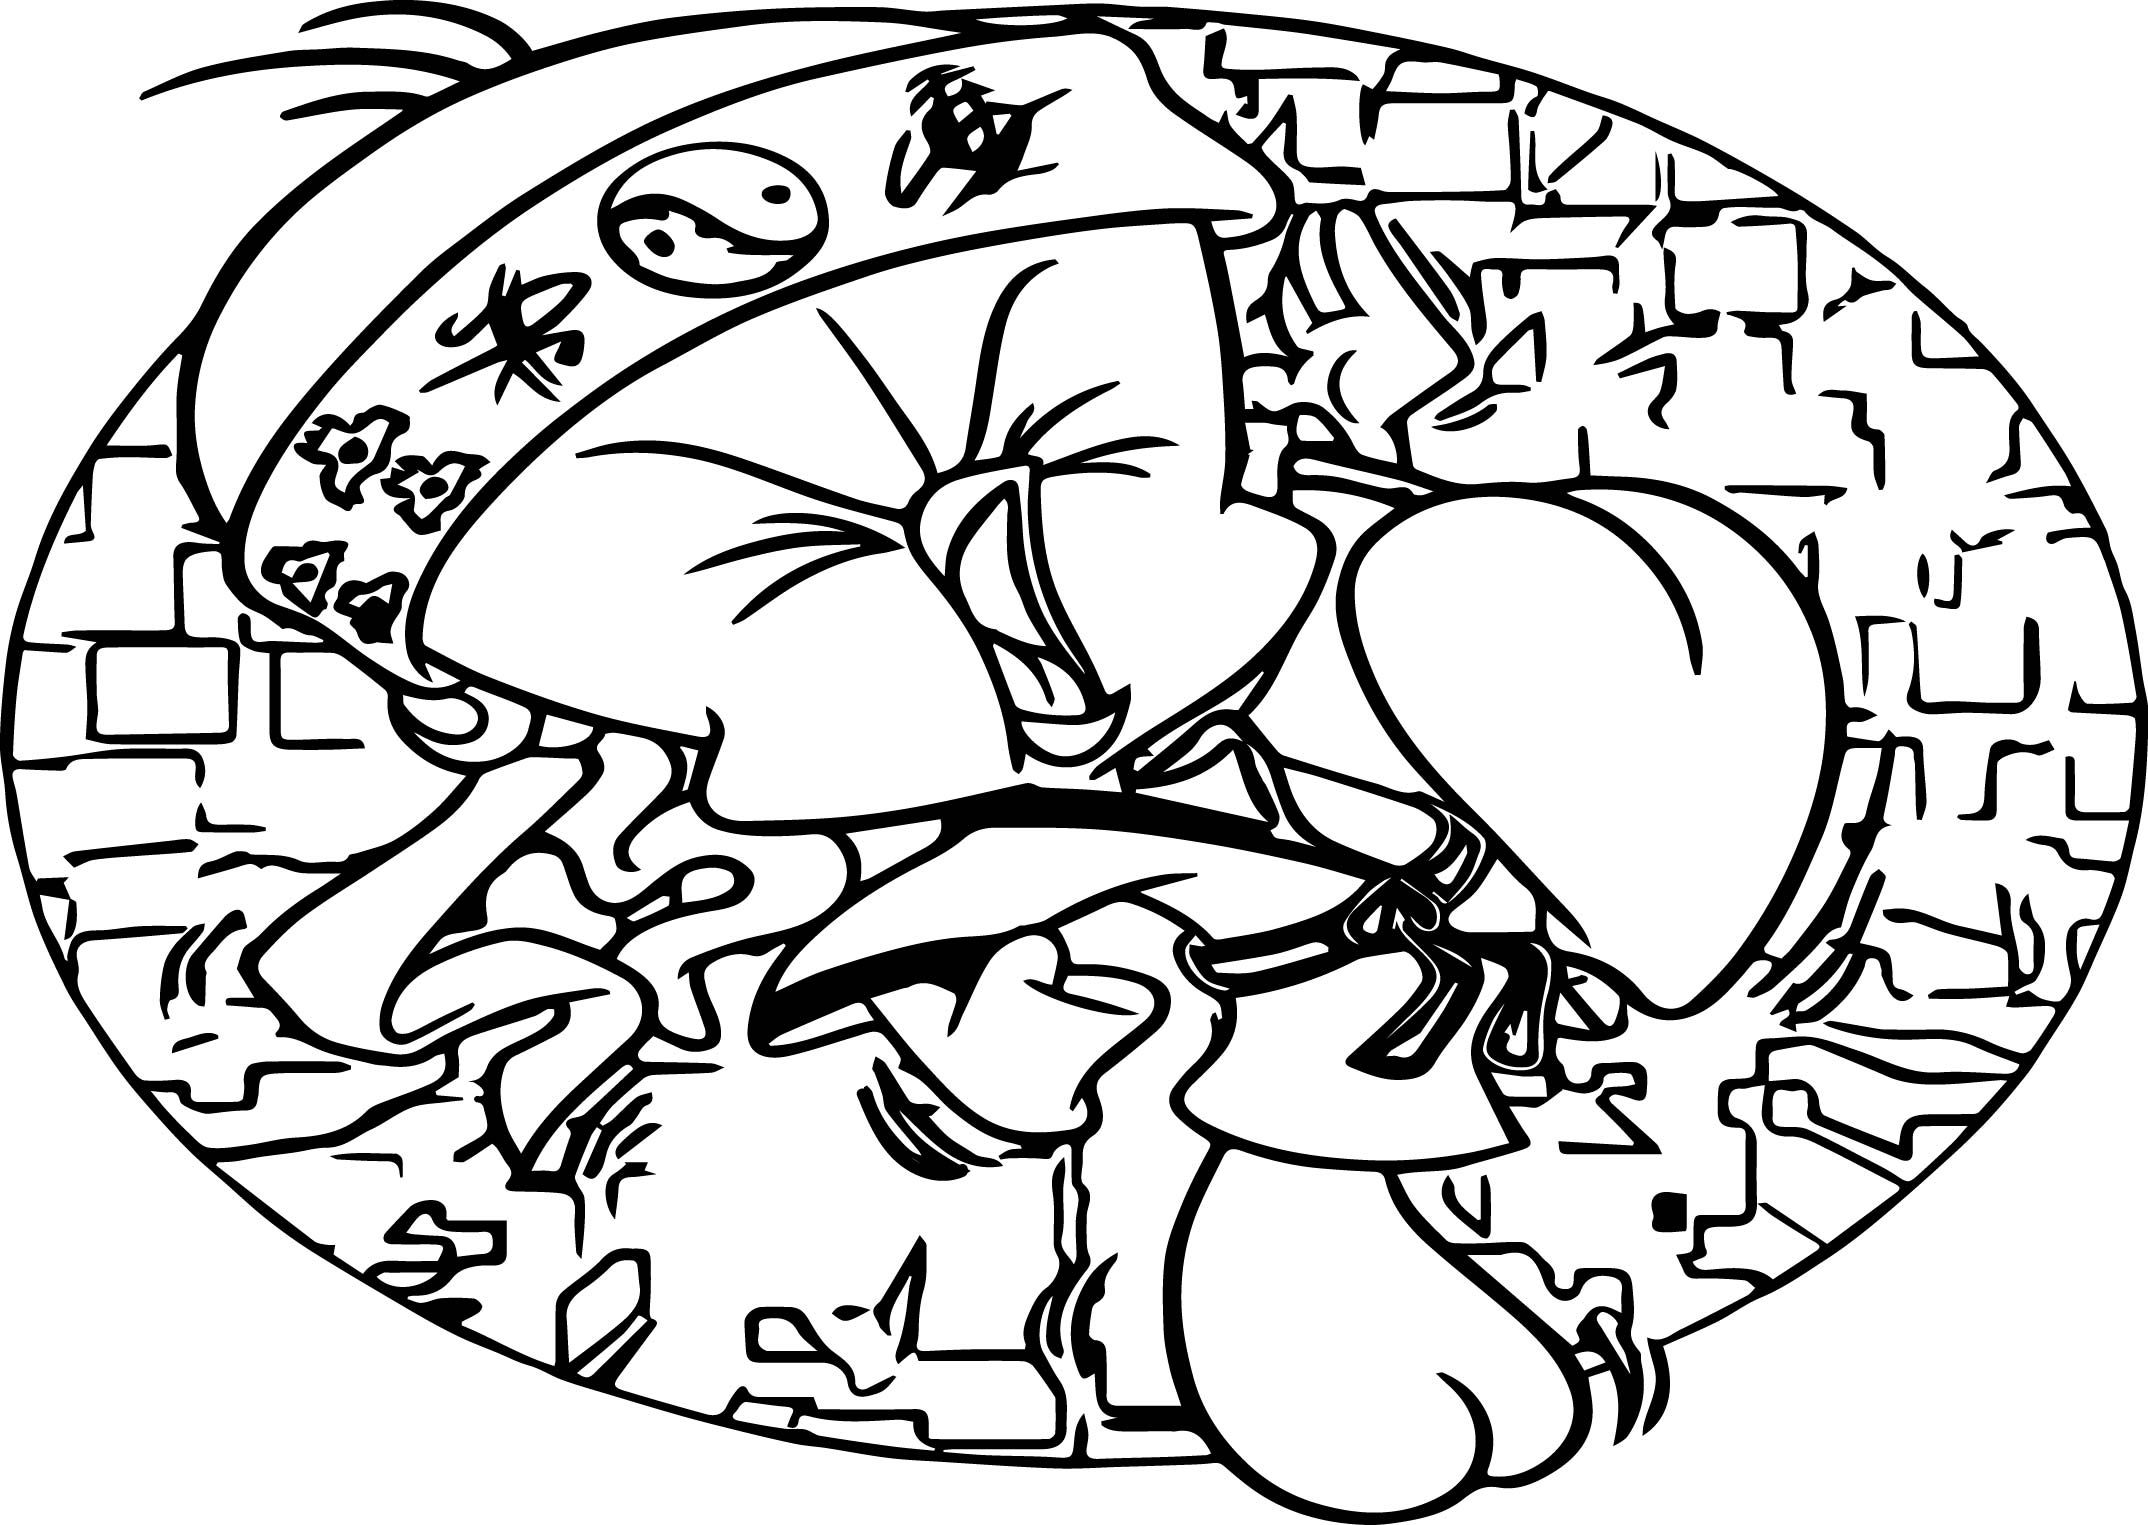 Cool Karate Tweety Coloring Page Coloring Pages Karate Coloring Pages For Boys